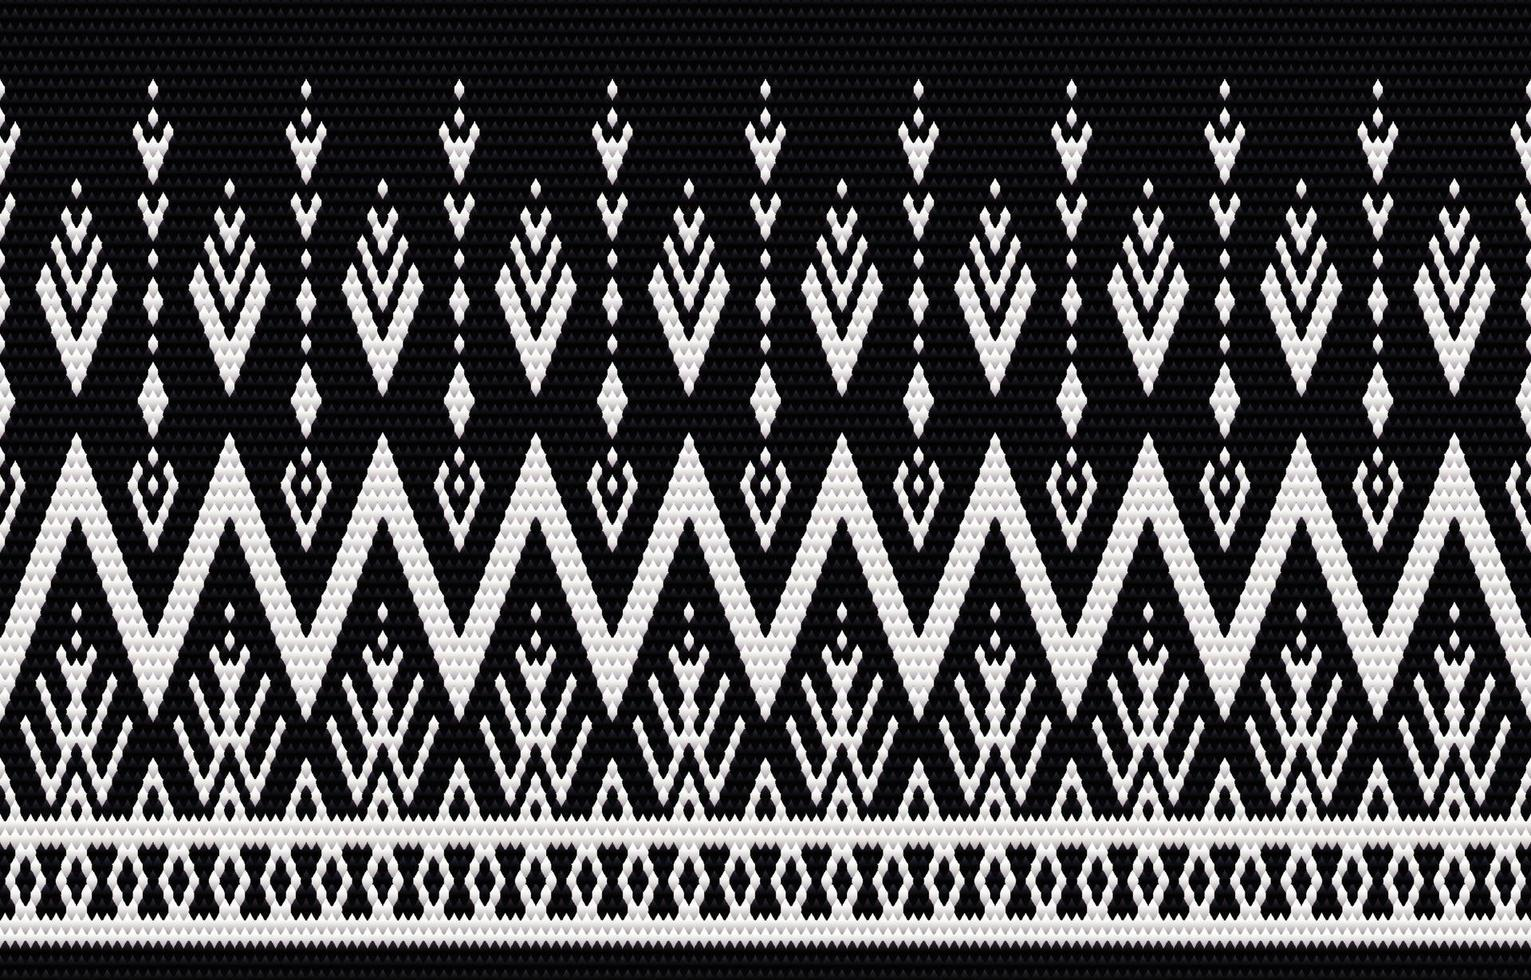 Geometric ethnic pattern embroidery and traditional design. Tribal ethnic vector texture. Design for carpet, wallpaper, clothing, wrapping, batik, fabric in embroidery style in Ethnic themes.